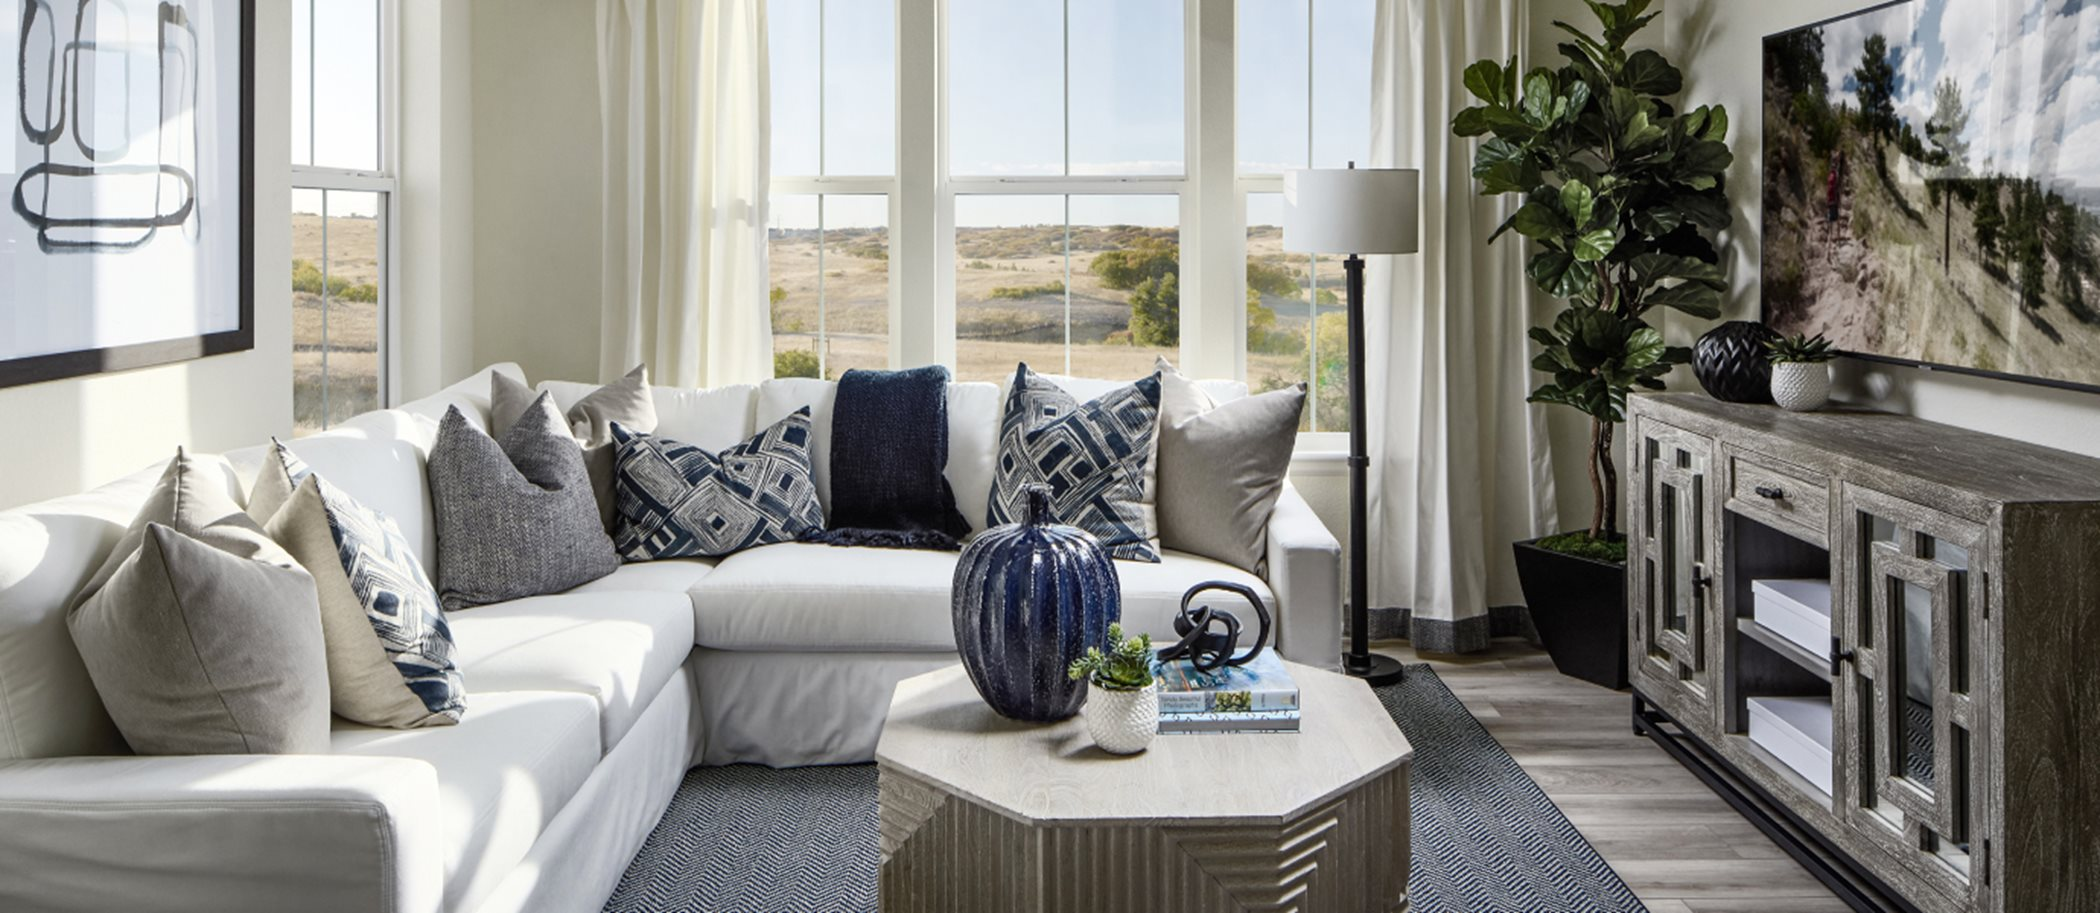 Palisade Park Paired Homes Vibrant-Left Living Room